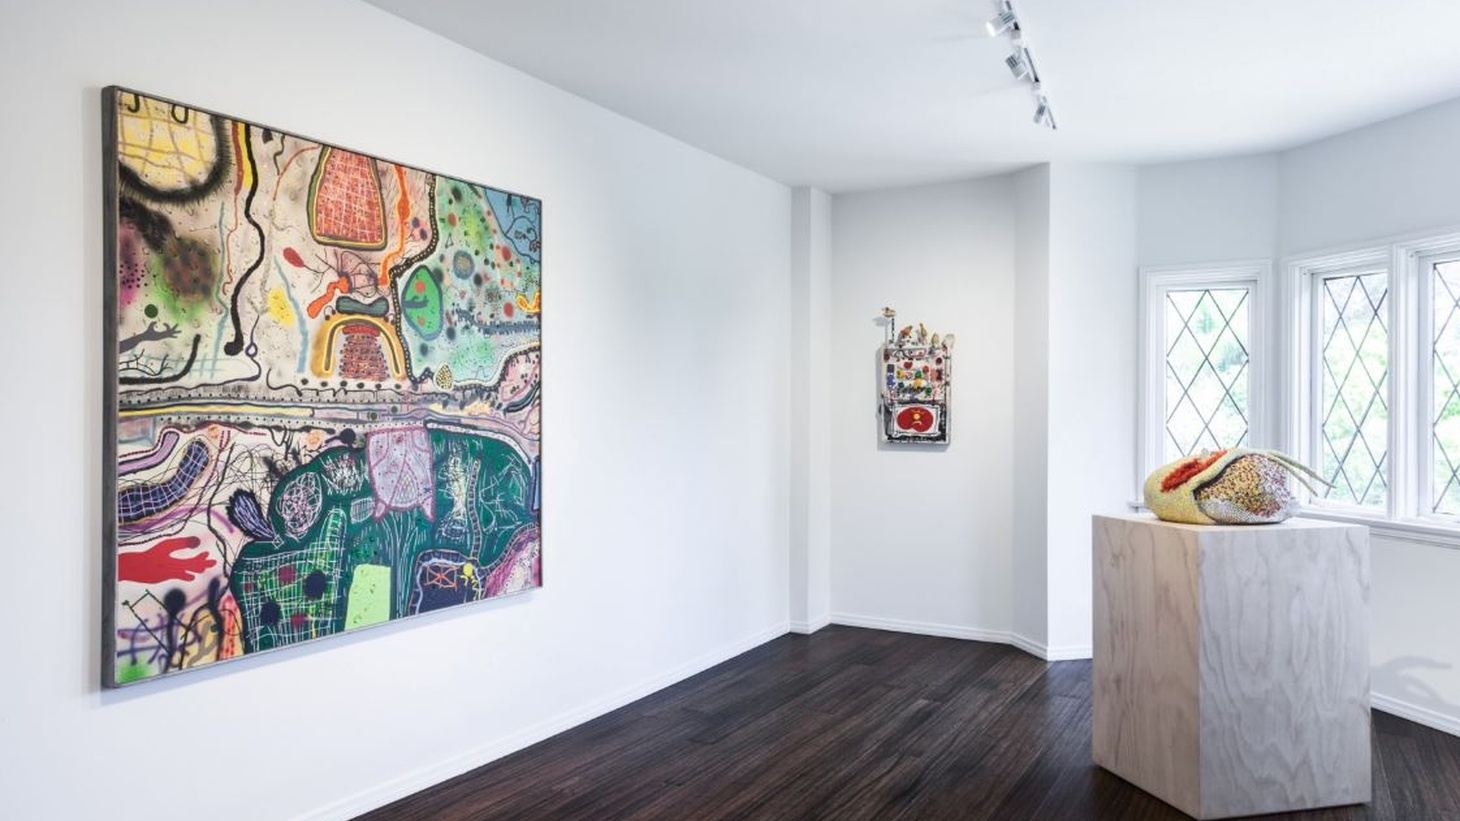 Dilexi Gallery: Seeking the Unknown runs until August 10th, 2019 at the Parker Gallery.